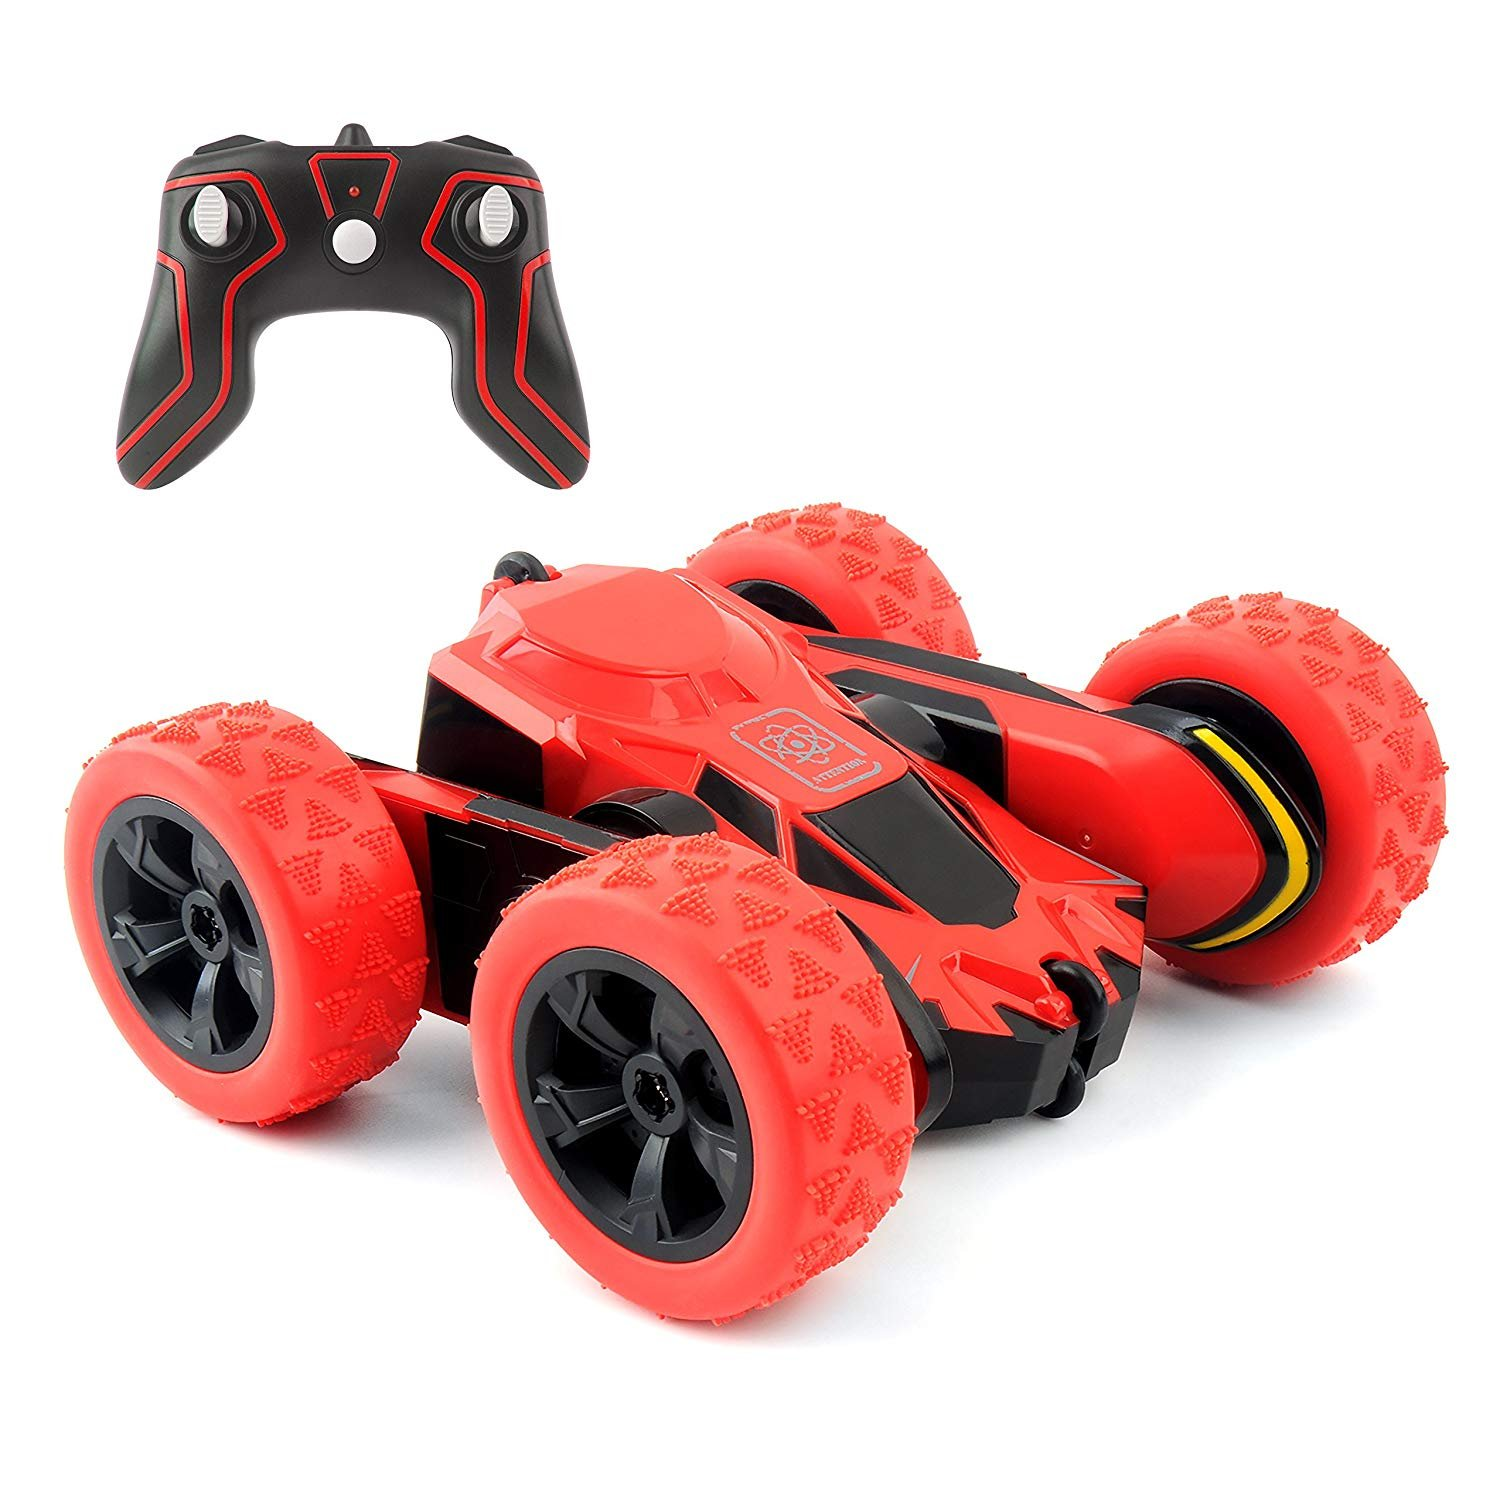 Toy Cars That You Can Drive >> Amicool Smc Hw112 4wd 2 4ghz Remote Control Car Double Sided Rotating Vehicles 360 Flips Kids Toy Cars For Boys Girls Birthday Red 16